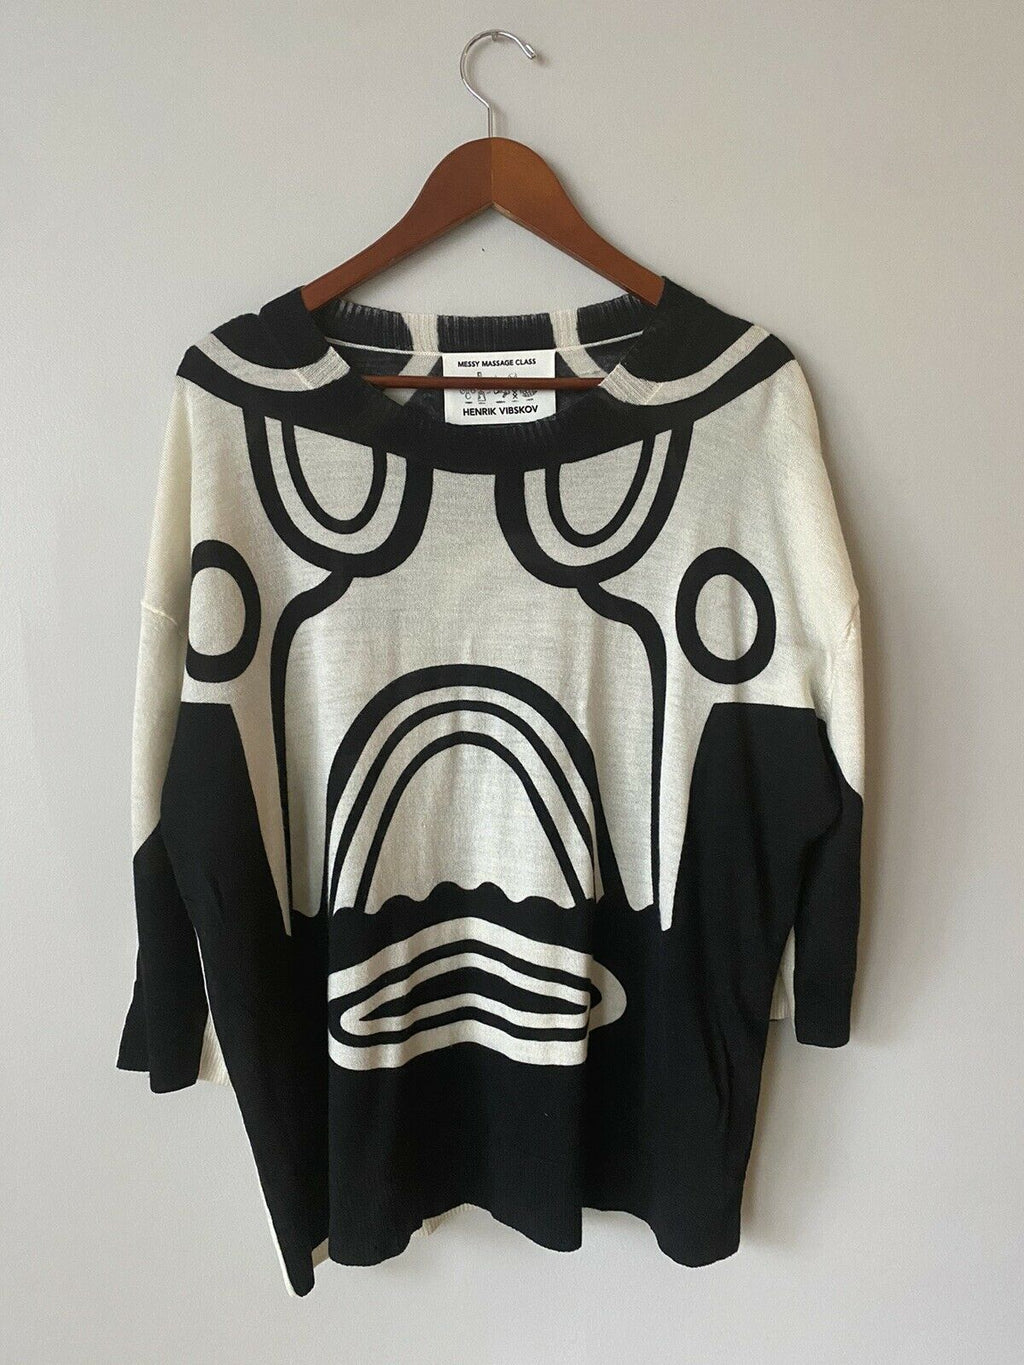 Henrik Vibskov Messy Massage Class Unisex Small Black Ivory Sweater Shirt A/W15